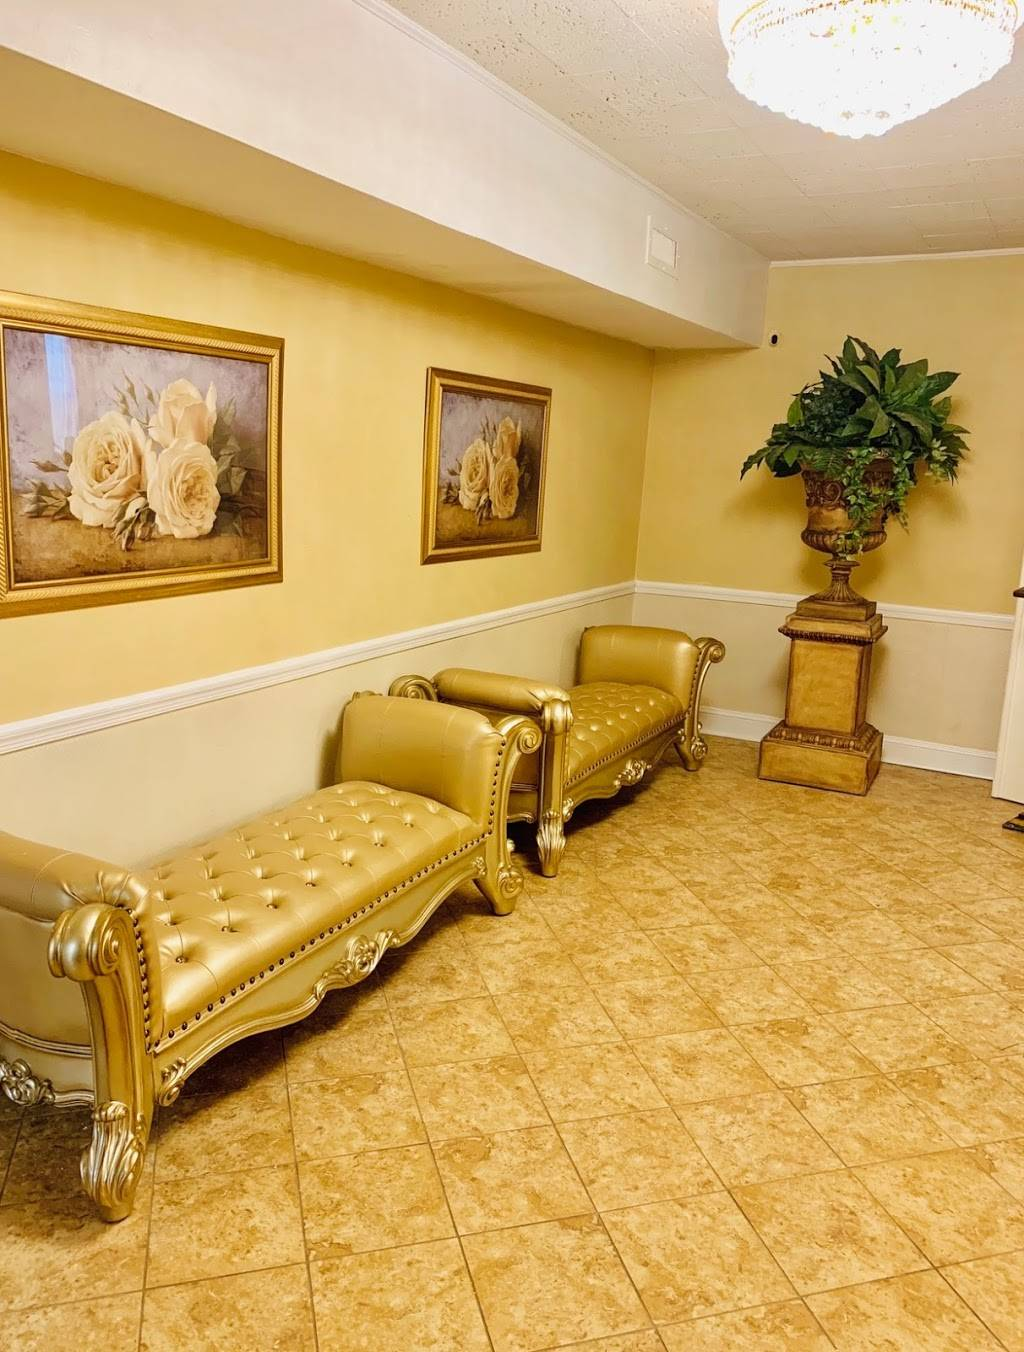 Chatman Harris Funeral Home - funeral home  | Photo 4 of 10 | Address: 4210 Belair Rd, Baltimore, MD 21206, USA | Phone: (410) 488-5947